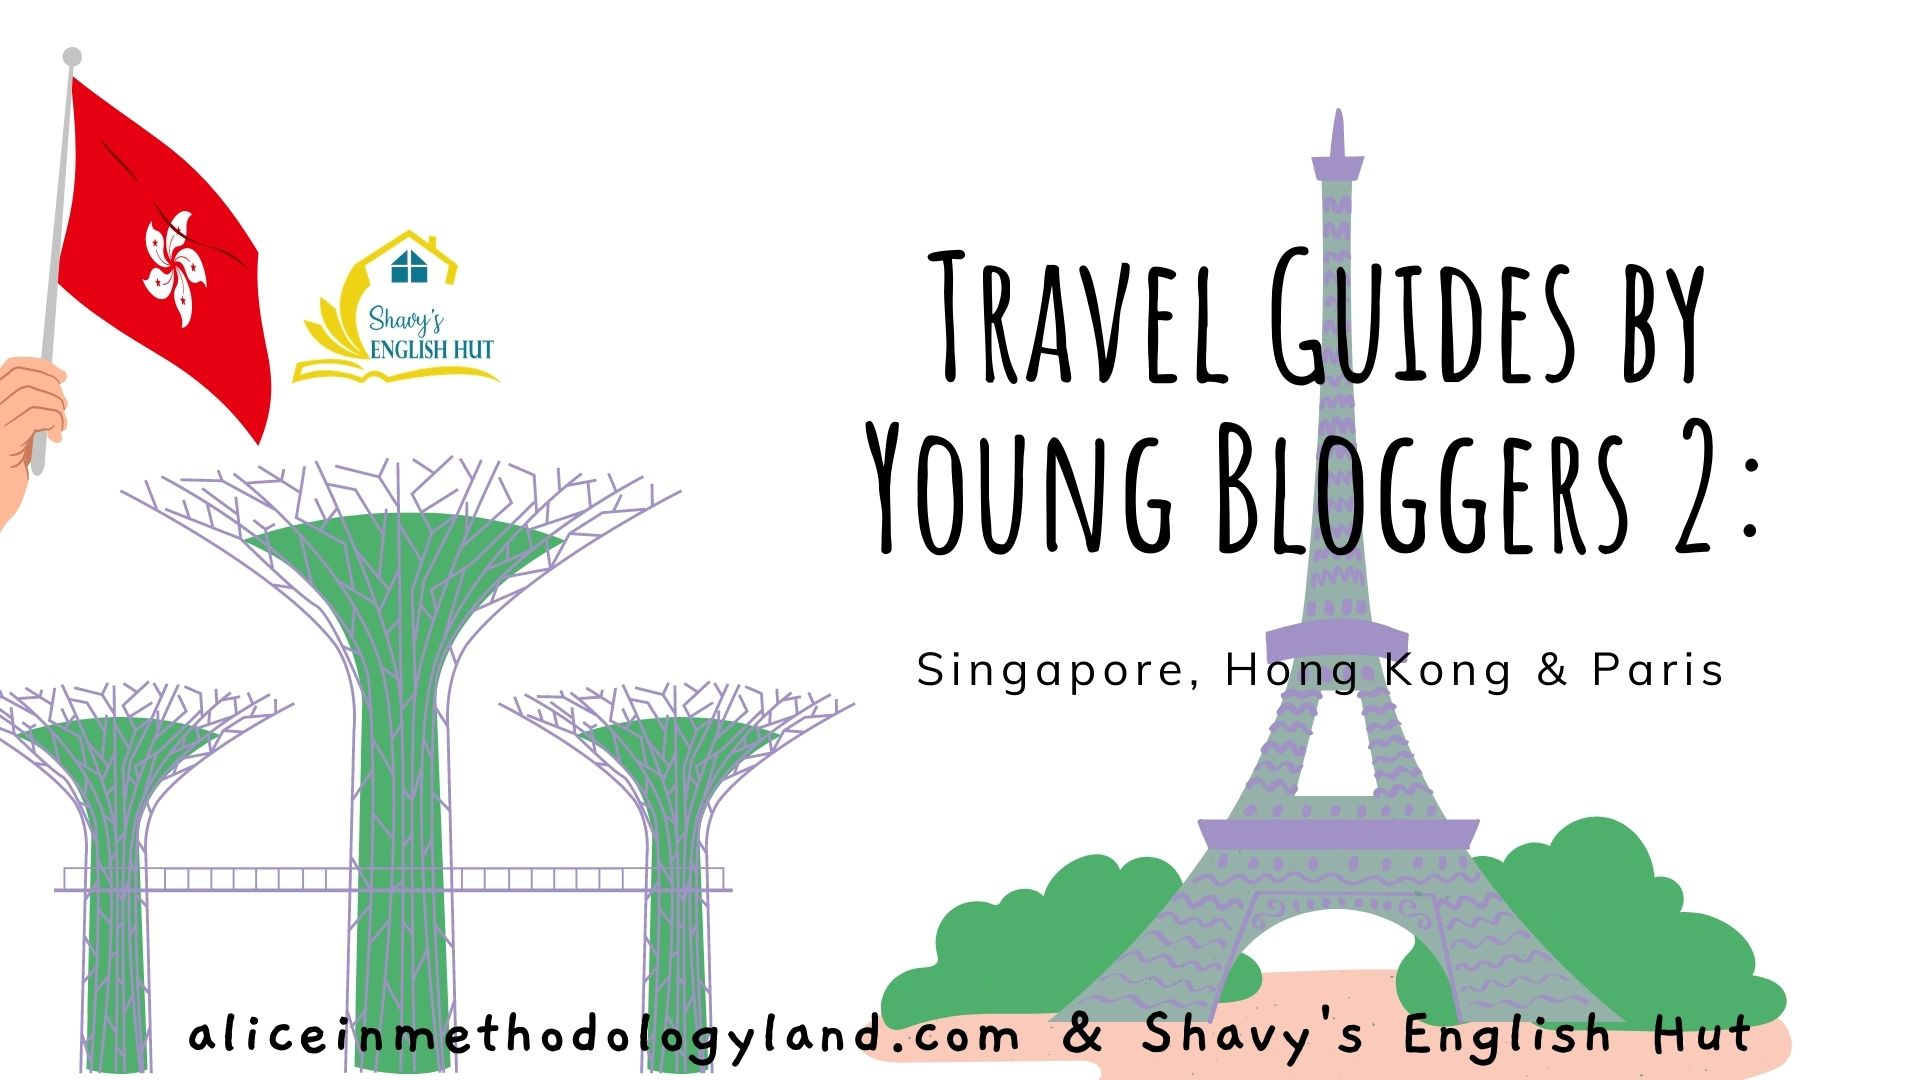 Travel Guides by Young Bloggers 2: Singapore, Hong Kong, and Paris